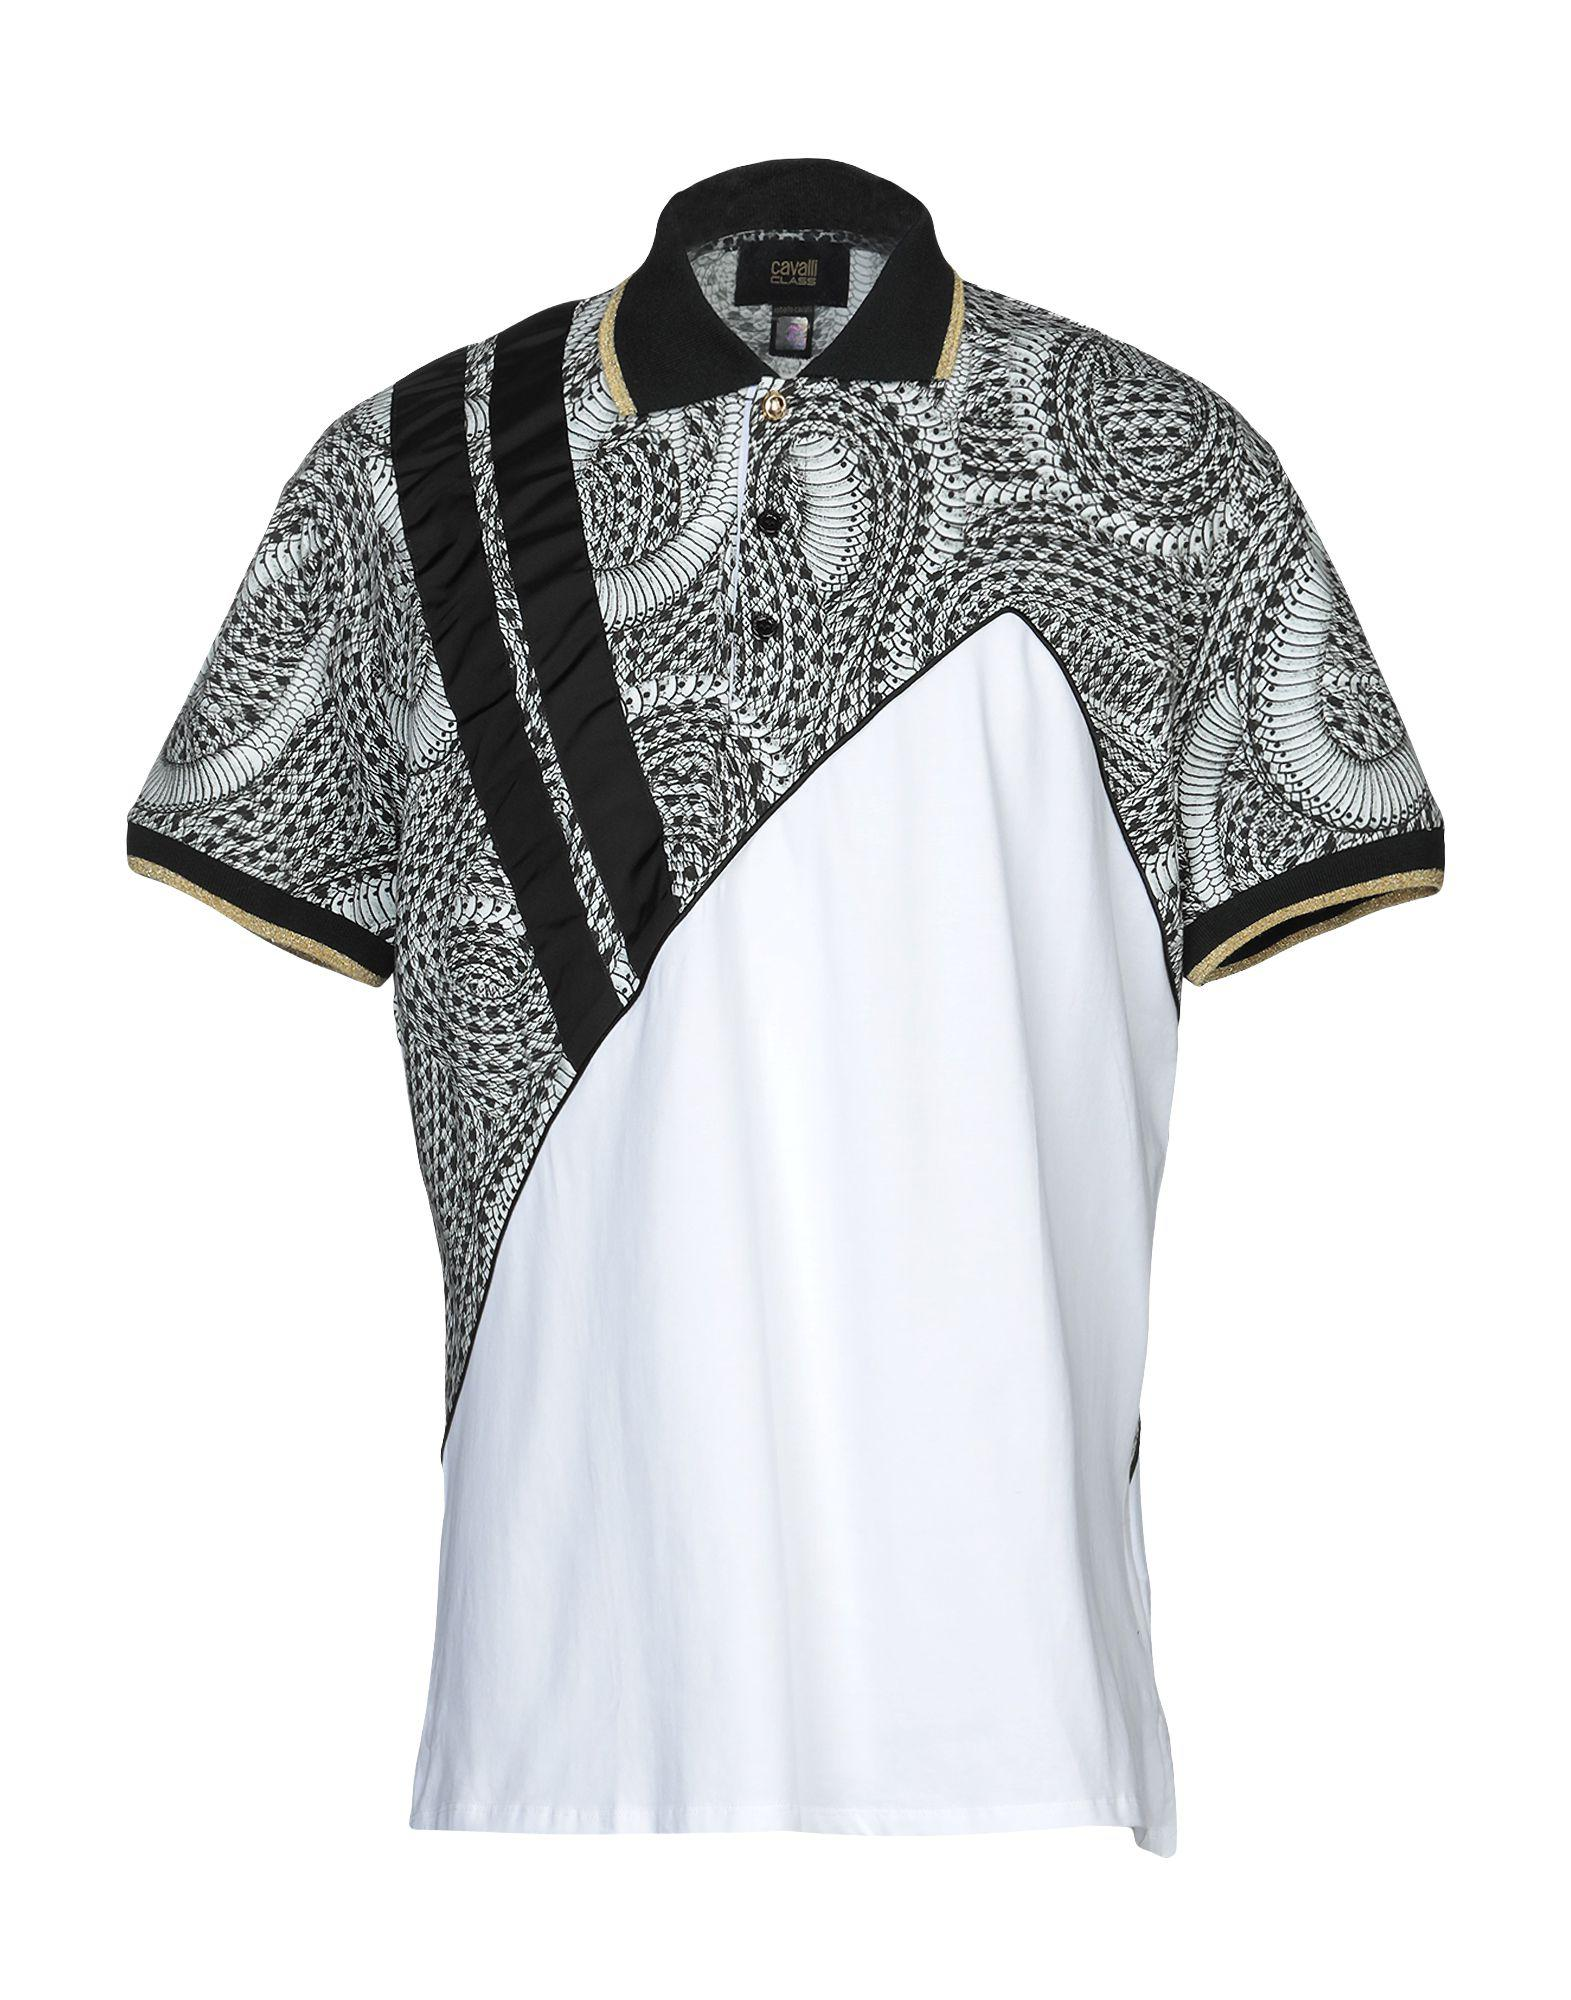 684afc69 Class Roberto Cavalli Polo Shirt in White for Men - Lyst